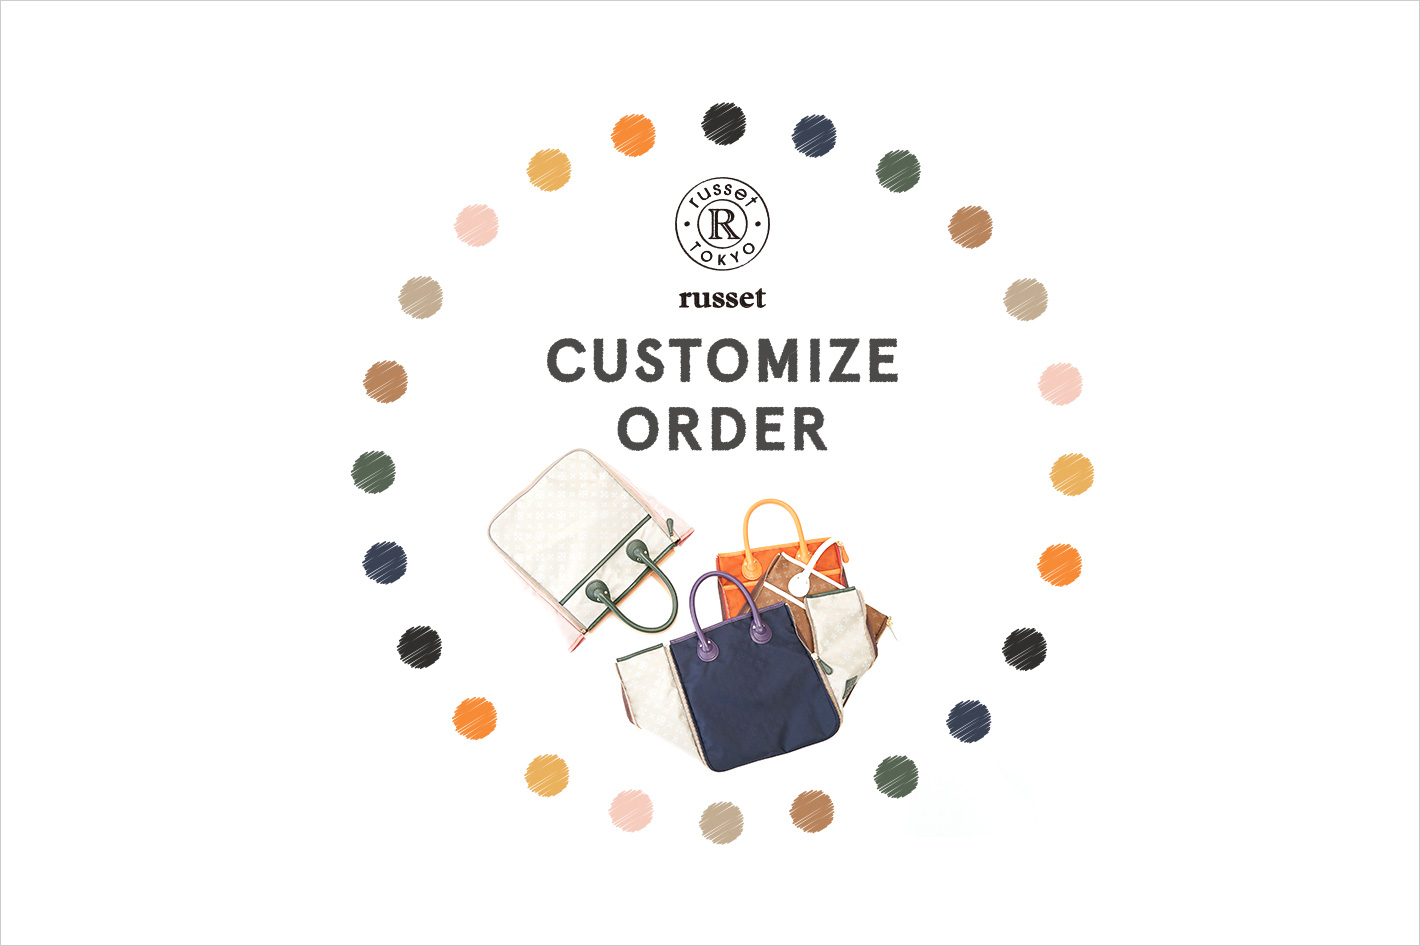 CUSTOMIZE ORDER